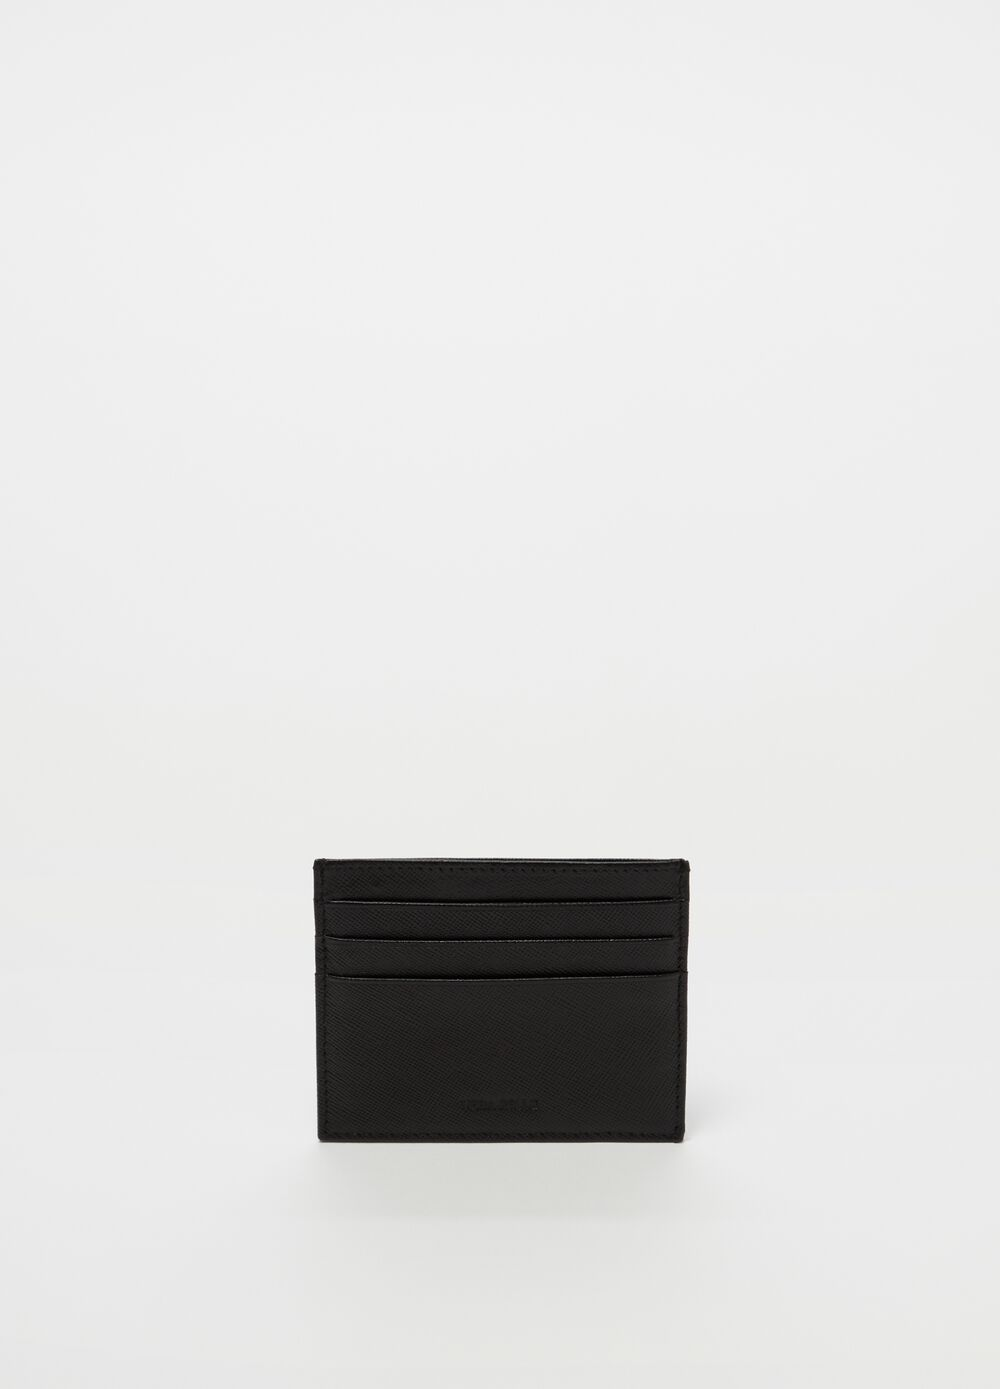 Genuine leather credit card holder